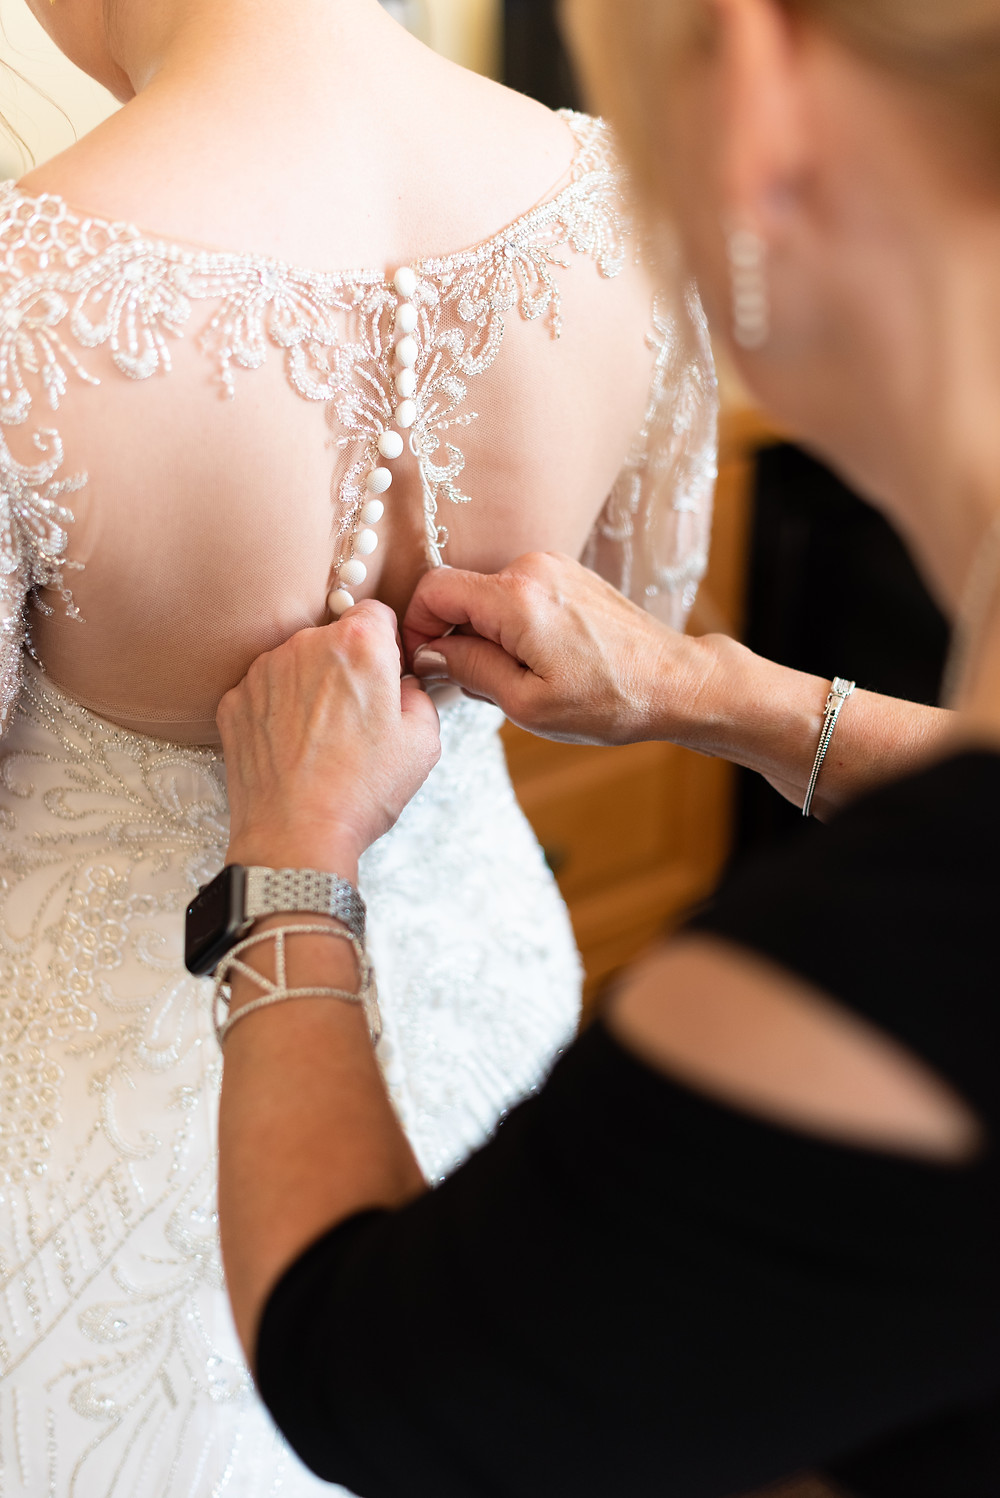 Mother of the bride buttoning the back of her daughter's wedding dress